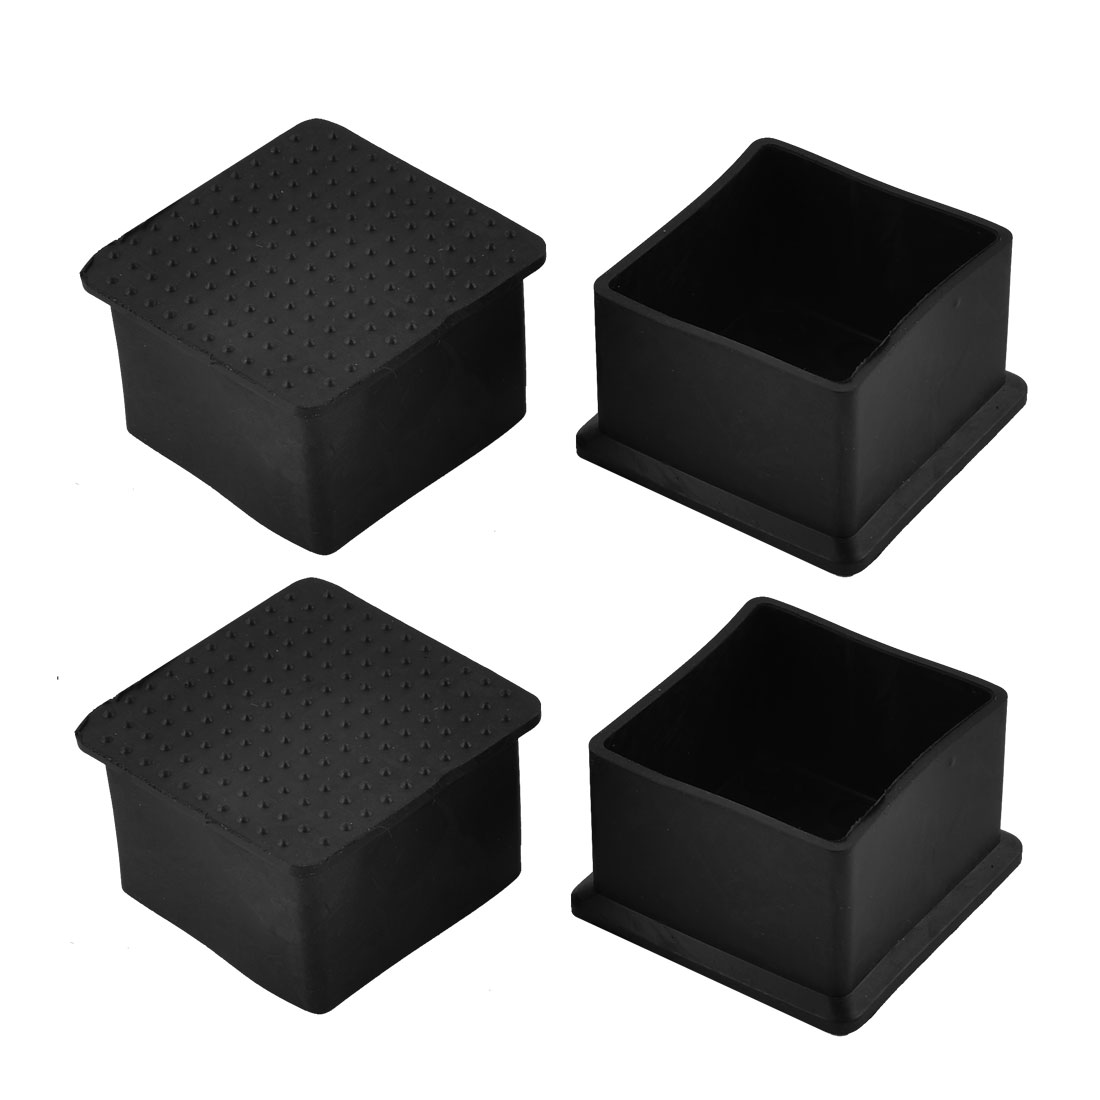 45mm x 45mm Square Shaped Furniture Foot Leg Rubber End Cap Cover Black 4pcs